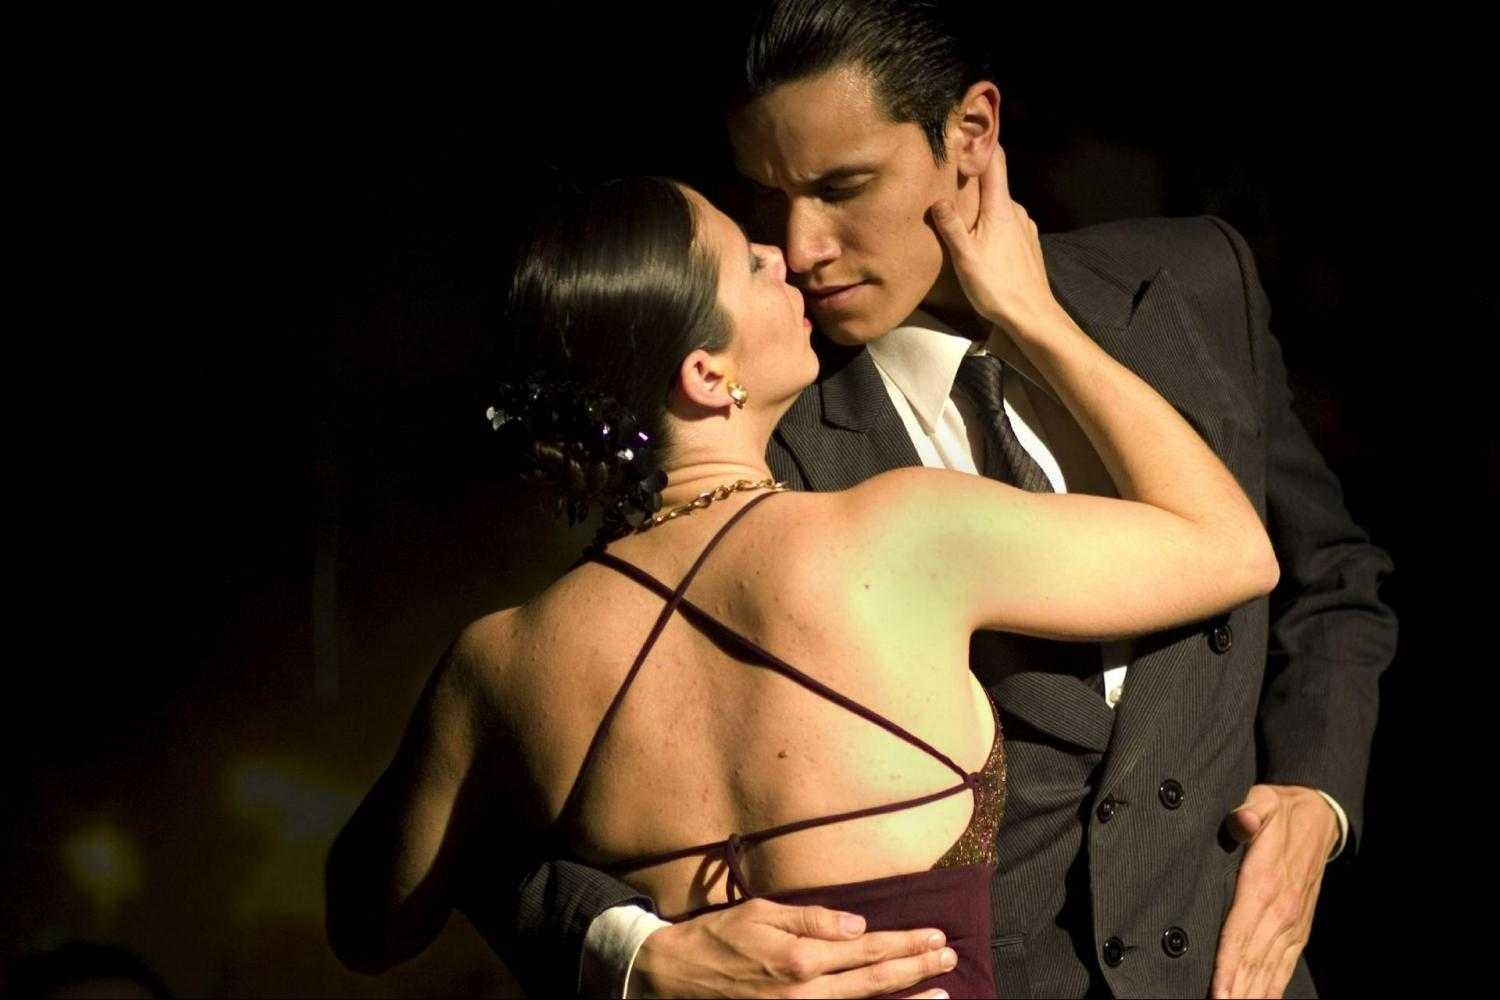 Lose yourself in the passion at Rojo Tango